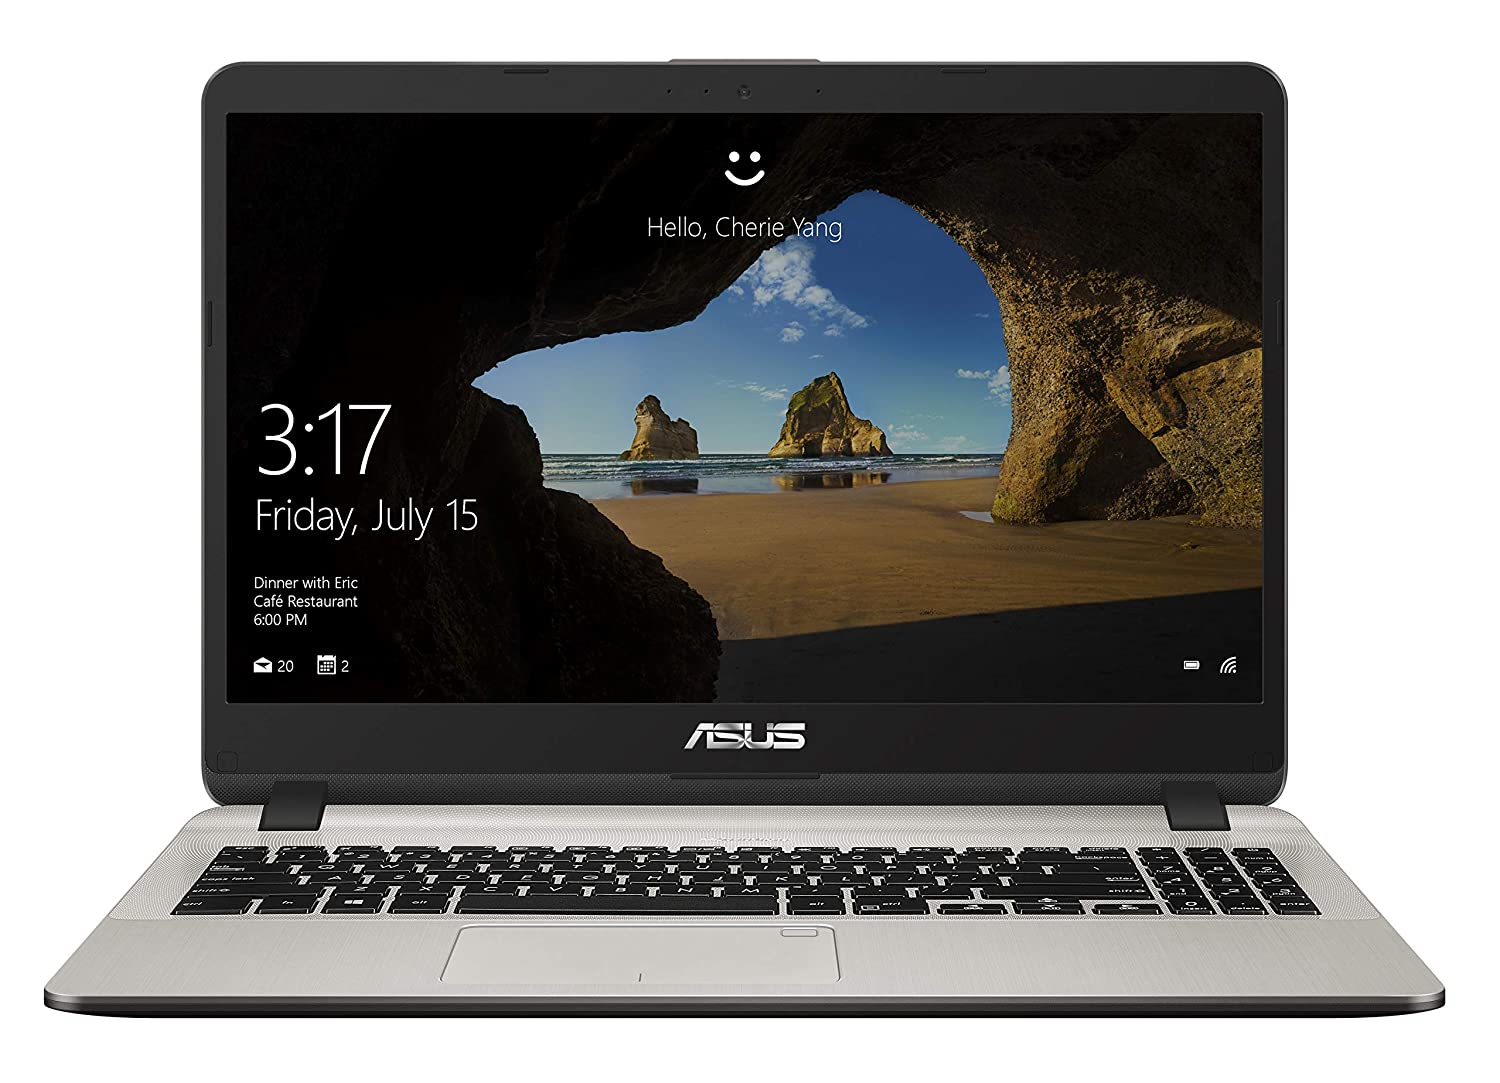 Asus Notebook Smart Connect Driver for Windows 10